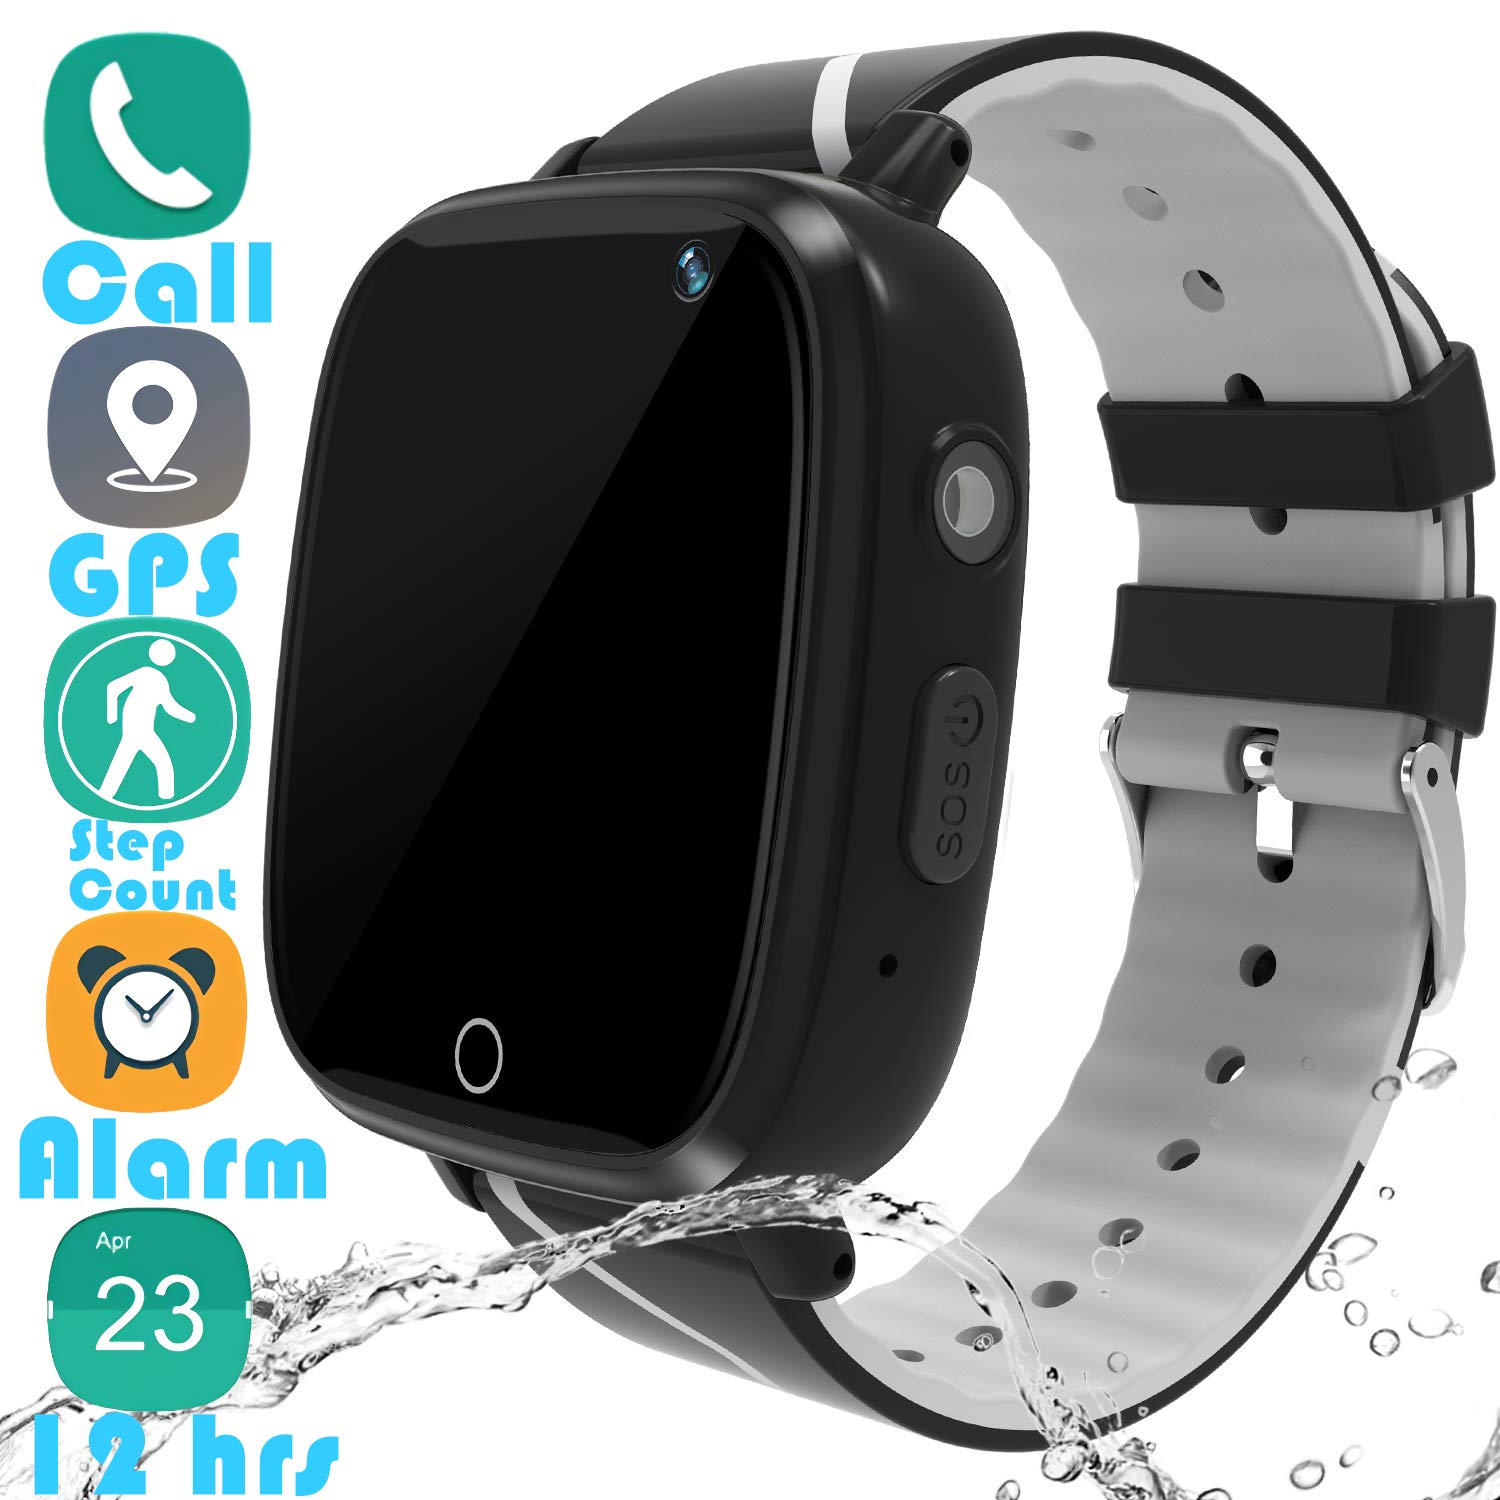 Kids Smartwatch GPS Tracker Gadget - 2019 Waterproof Children Smart Watches with 1.4'' Touch Screen 12 hrs SOS Phone Call Talkie Walkie Pedometer Fitness Sports Band for Boys Girls Age 4-12 (Black) by YENISEY